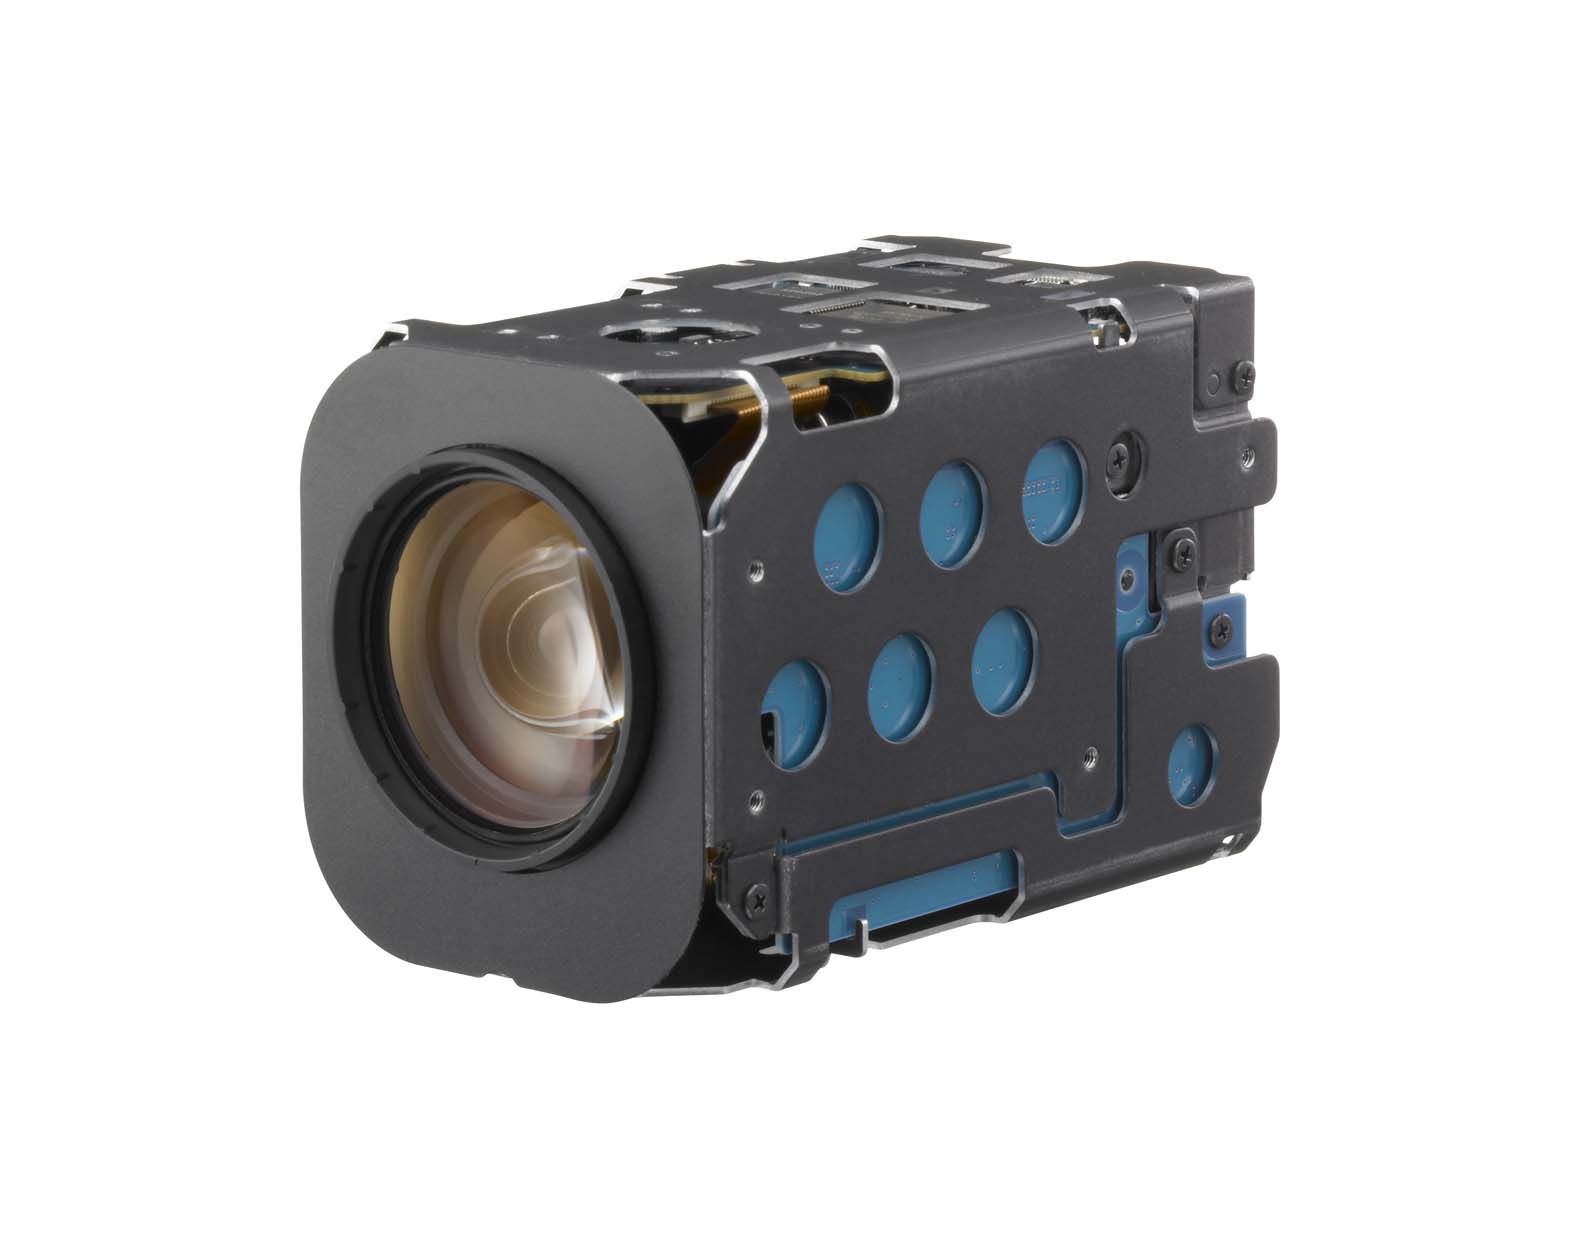 1/4 Sony FCB-EX1000P Color CCD Camera